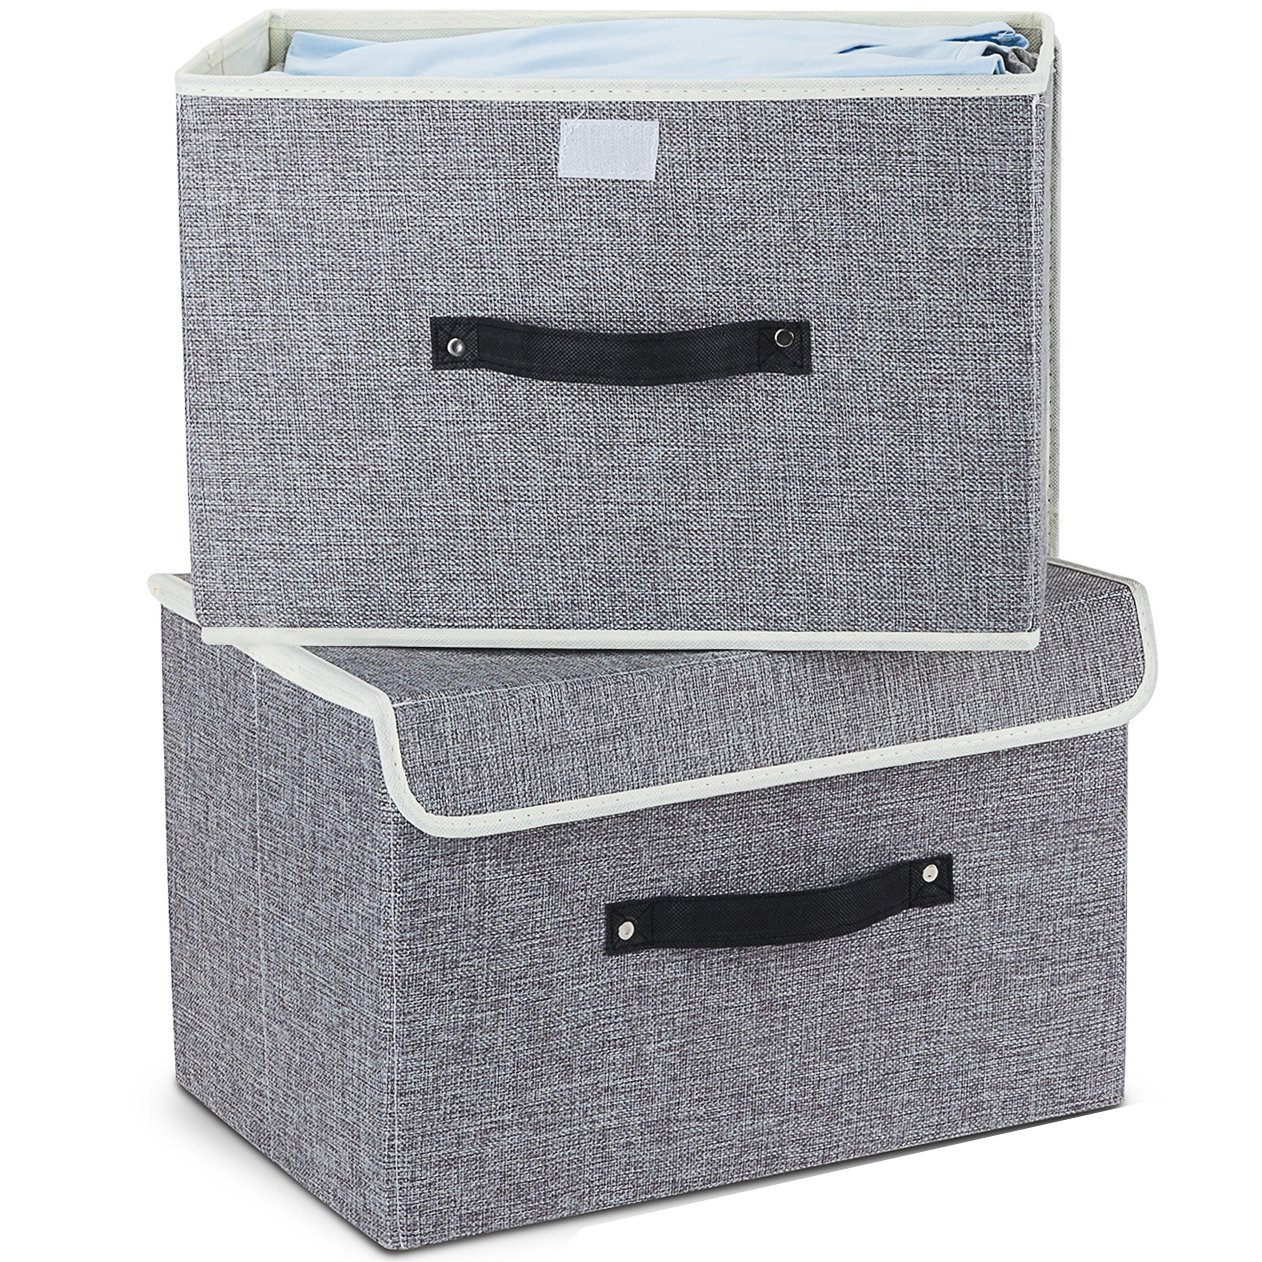 Storage Bins, Mee'life Set of Two Foldable Storage Box with Lids and Handles Storage Basket Storage Needs Containers Organizer With Built-in Cotton Fabric Closet Drawer Removable Dividers(Cream) mee' life STORAGE Others